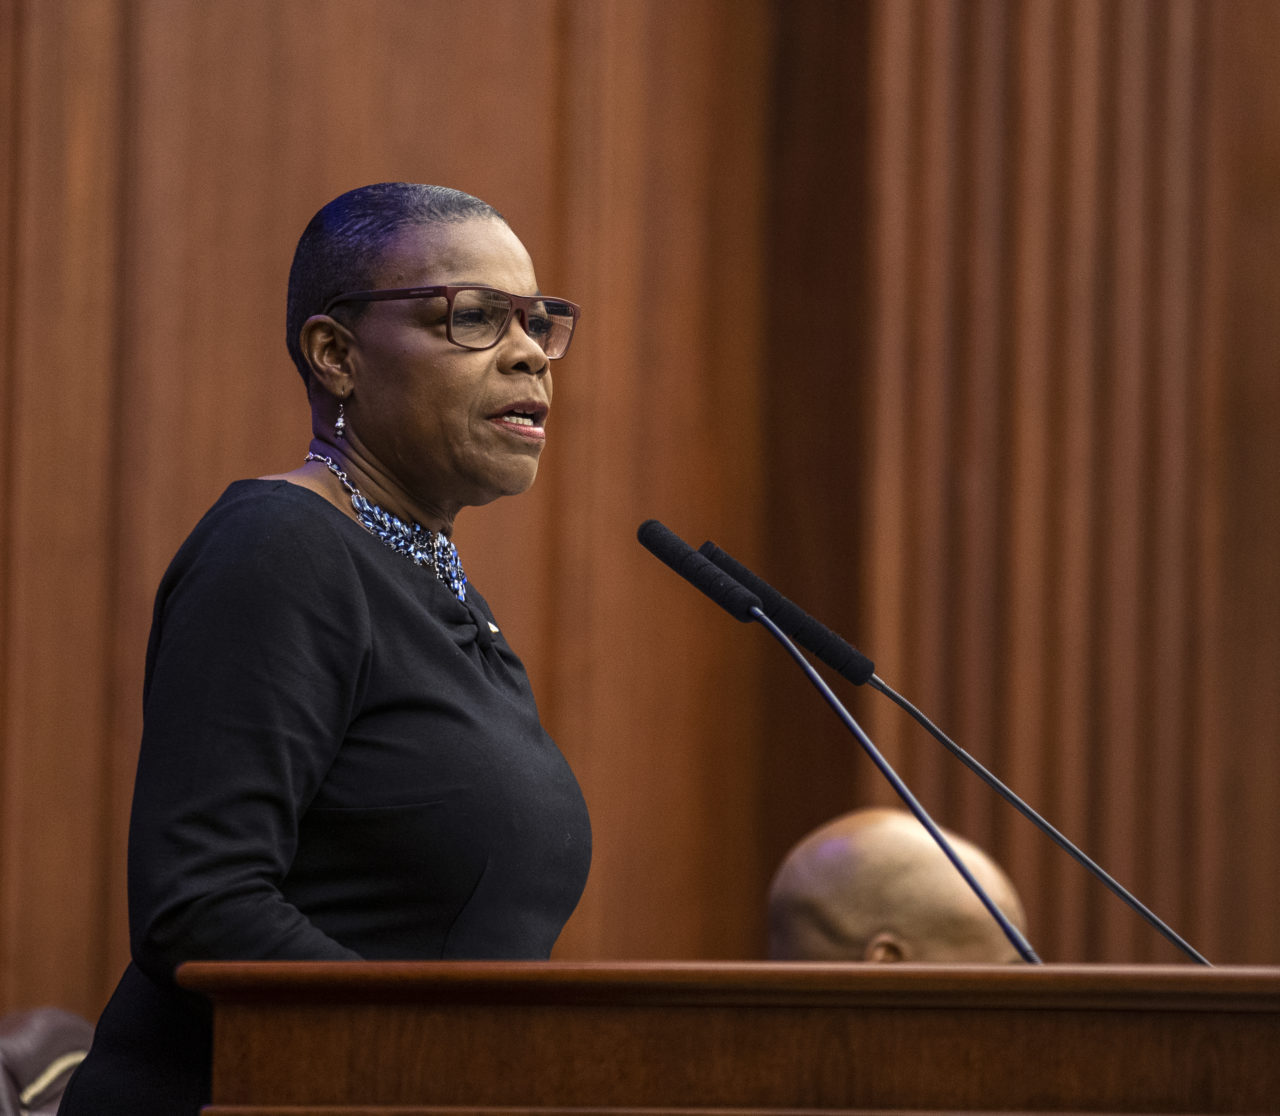 The Florida Senate Democratic caucus met to elect Sen. Audrey Gibson  (D-Jacksonville) as the Democratic leader during the 2019 and 2020 legislative sessions